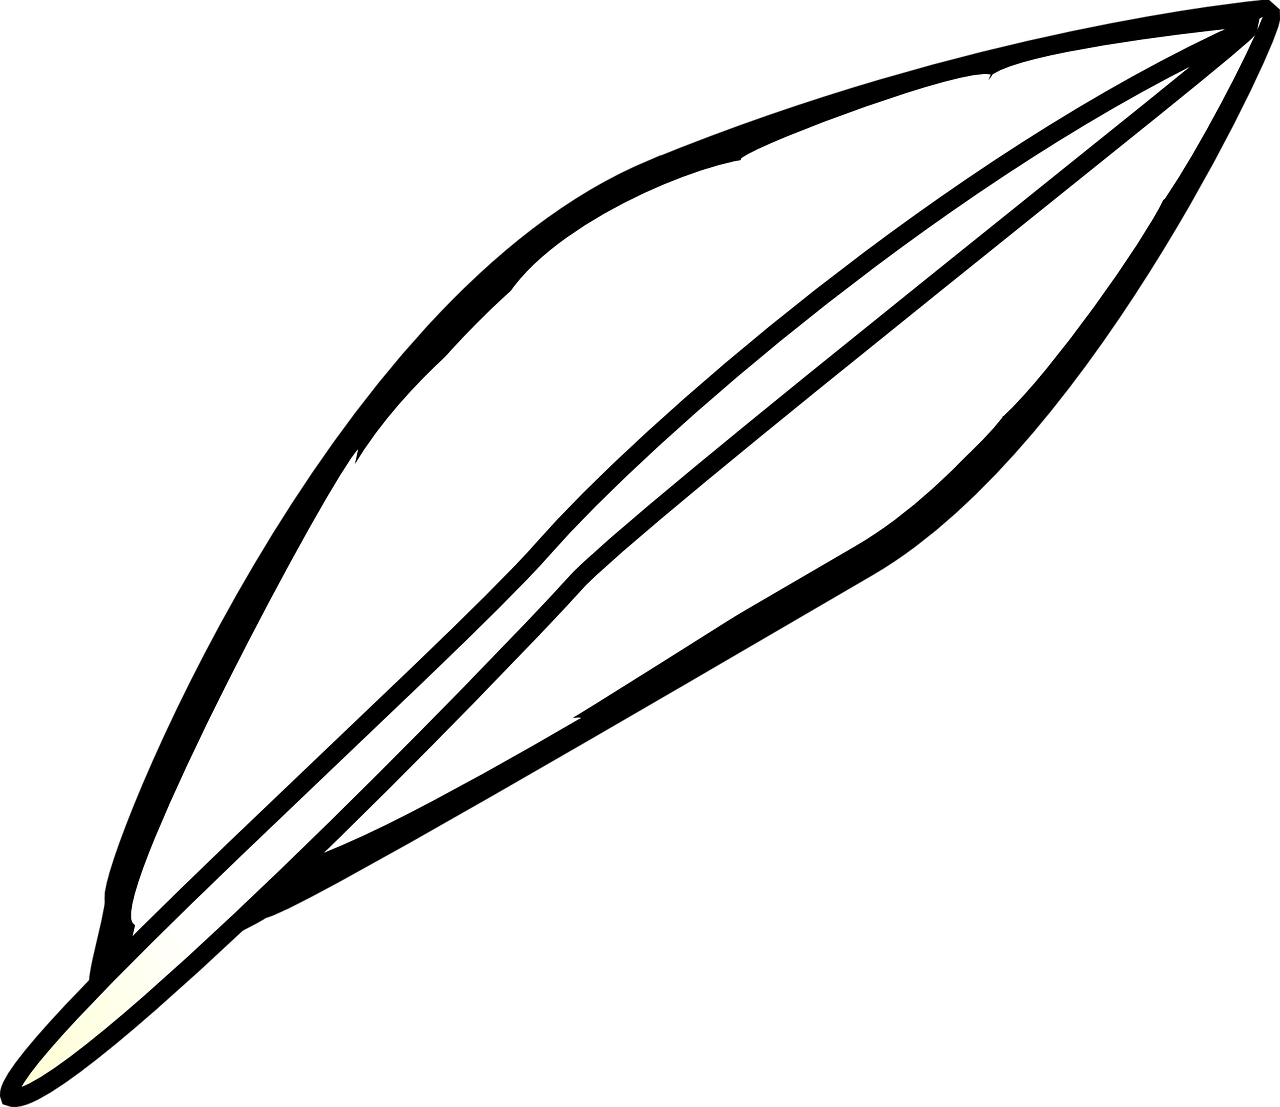 Bird lightweight png image. Feather clipart simple